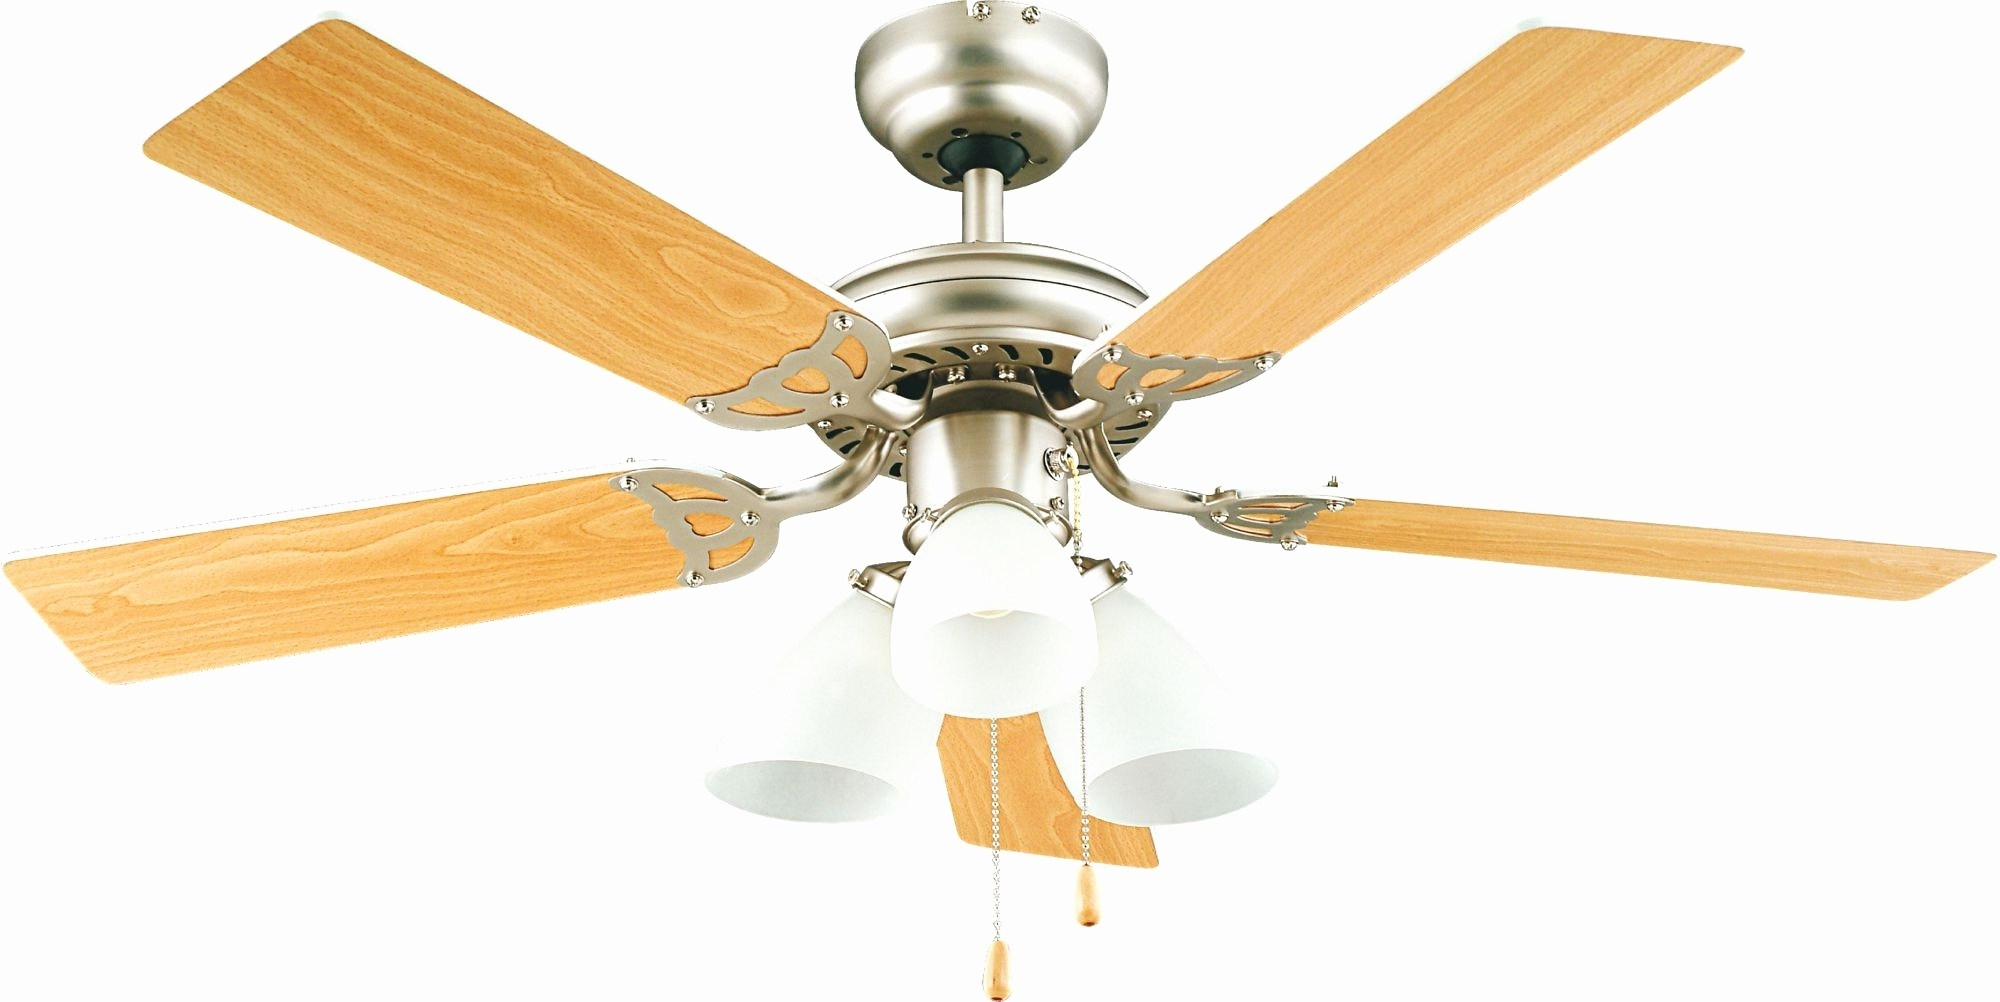 Artistic Of Kitchen Ceiling Fan Light Outdoor Ceiling Fans Light With Regard To 2019 Outdoor Ceiling Fans For High Wind Areas (View 19 of 20)